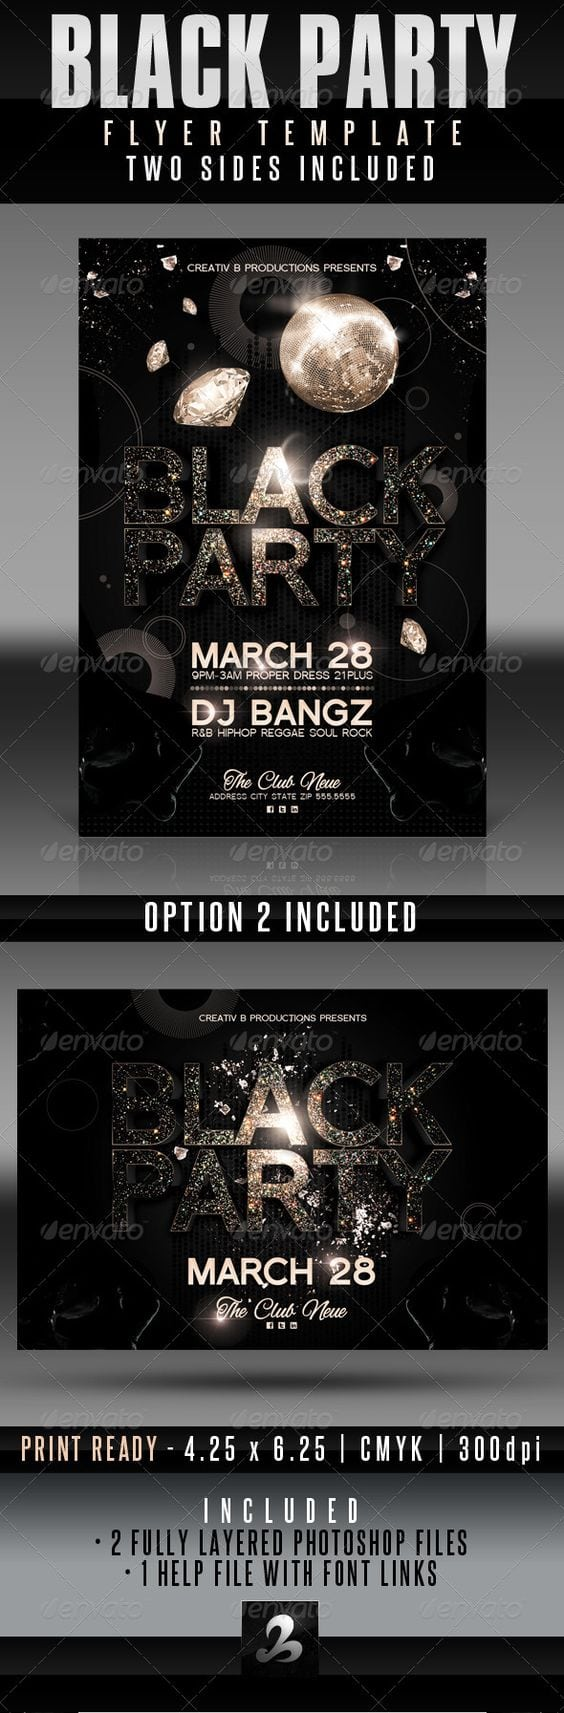 Black Party Invitations